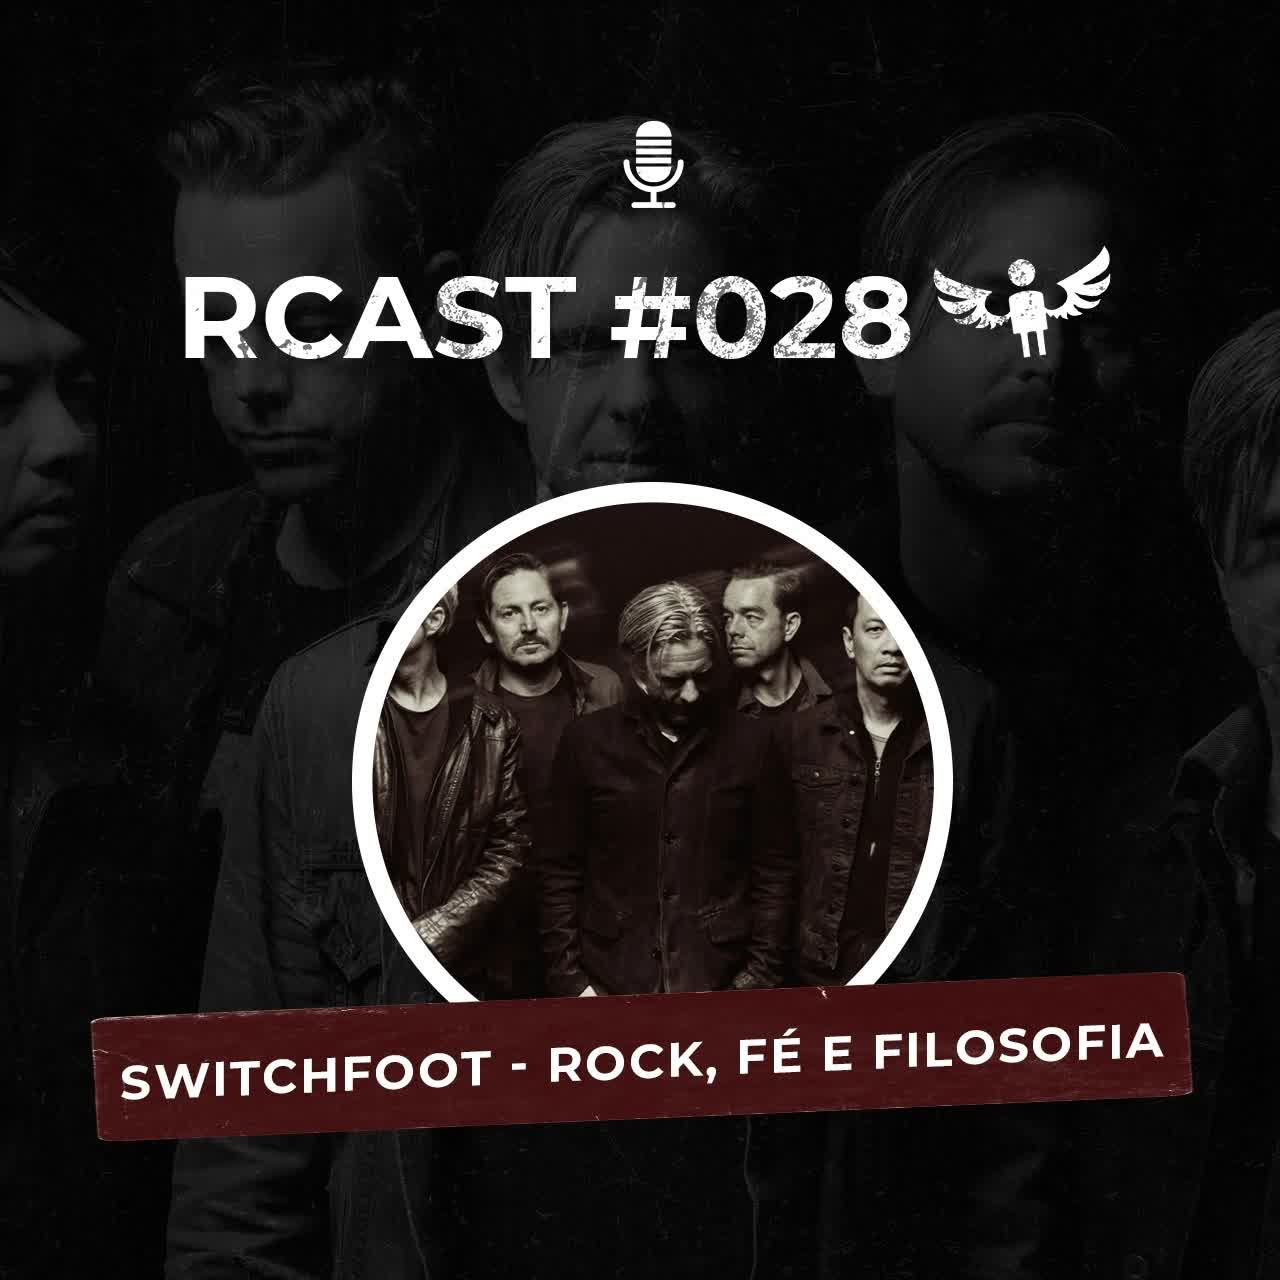 RCast #028 - SWITCHFOOT, ROCK, FÉ E FILOSOFIA